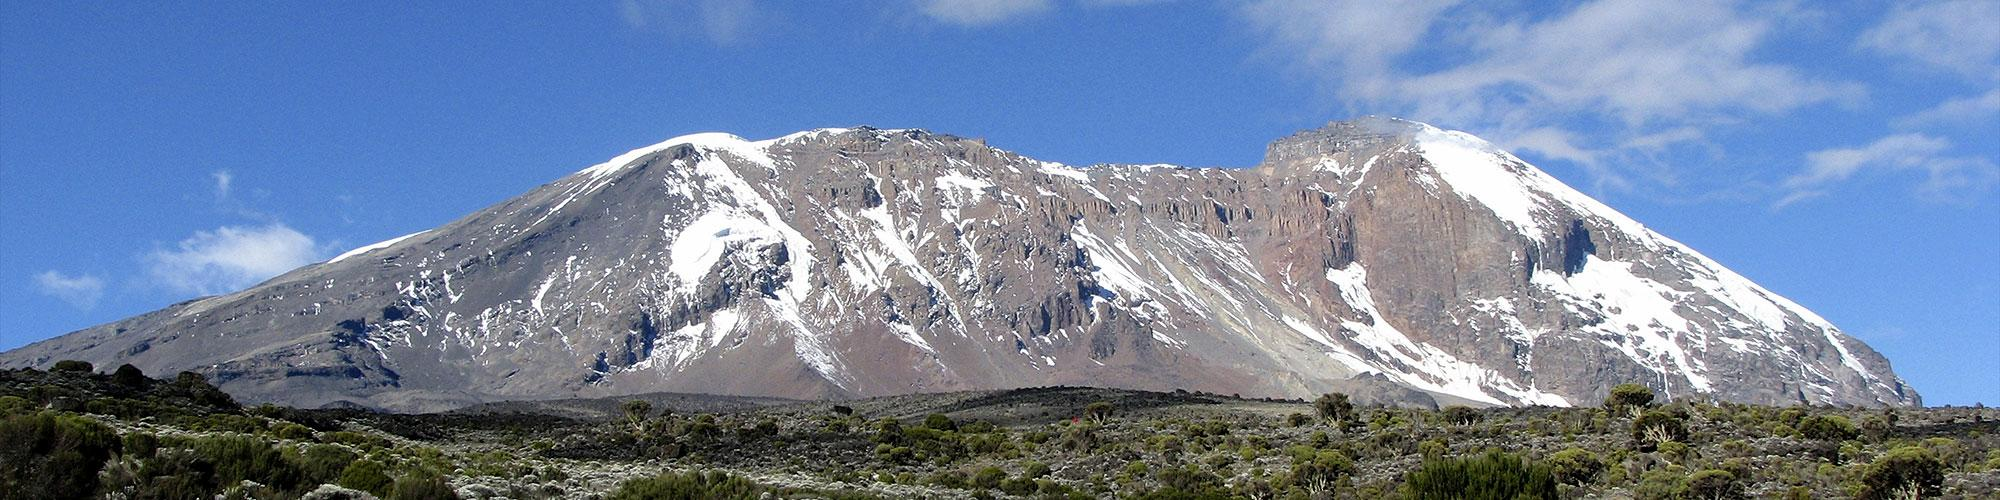 Mt. Kilimanjaro - The Machame Route